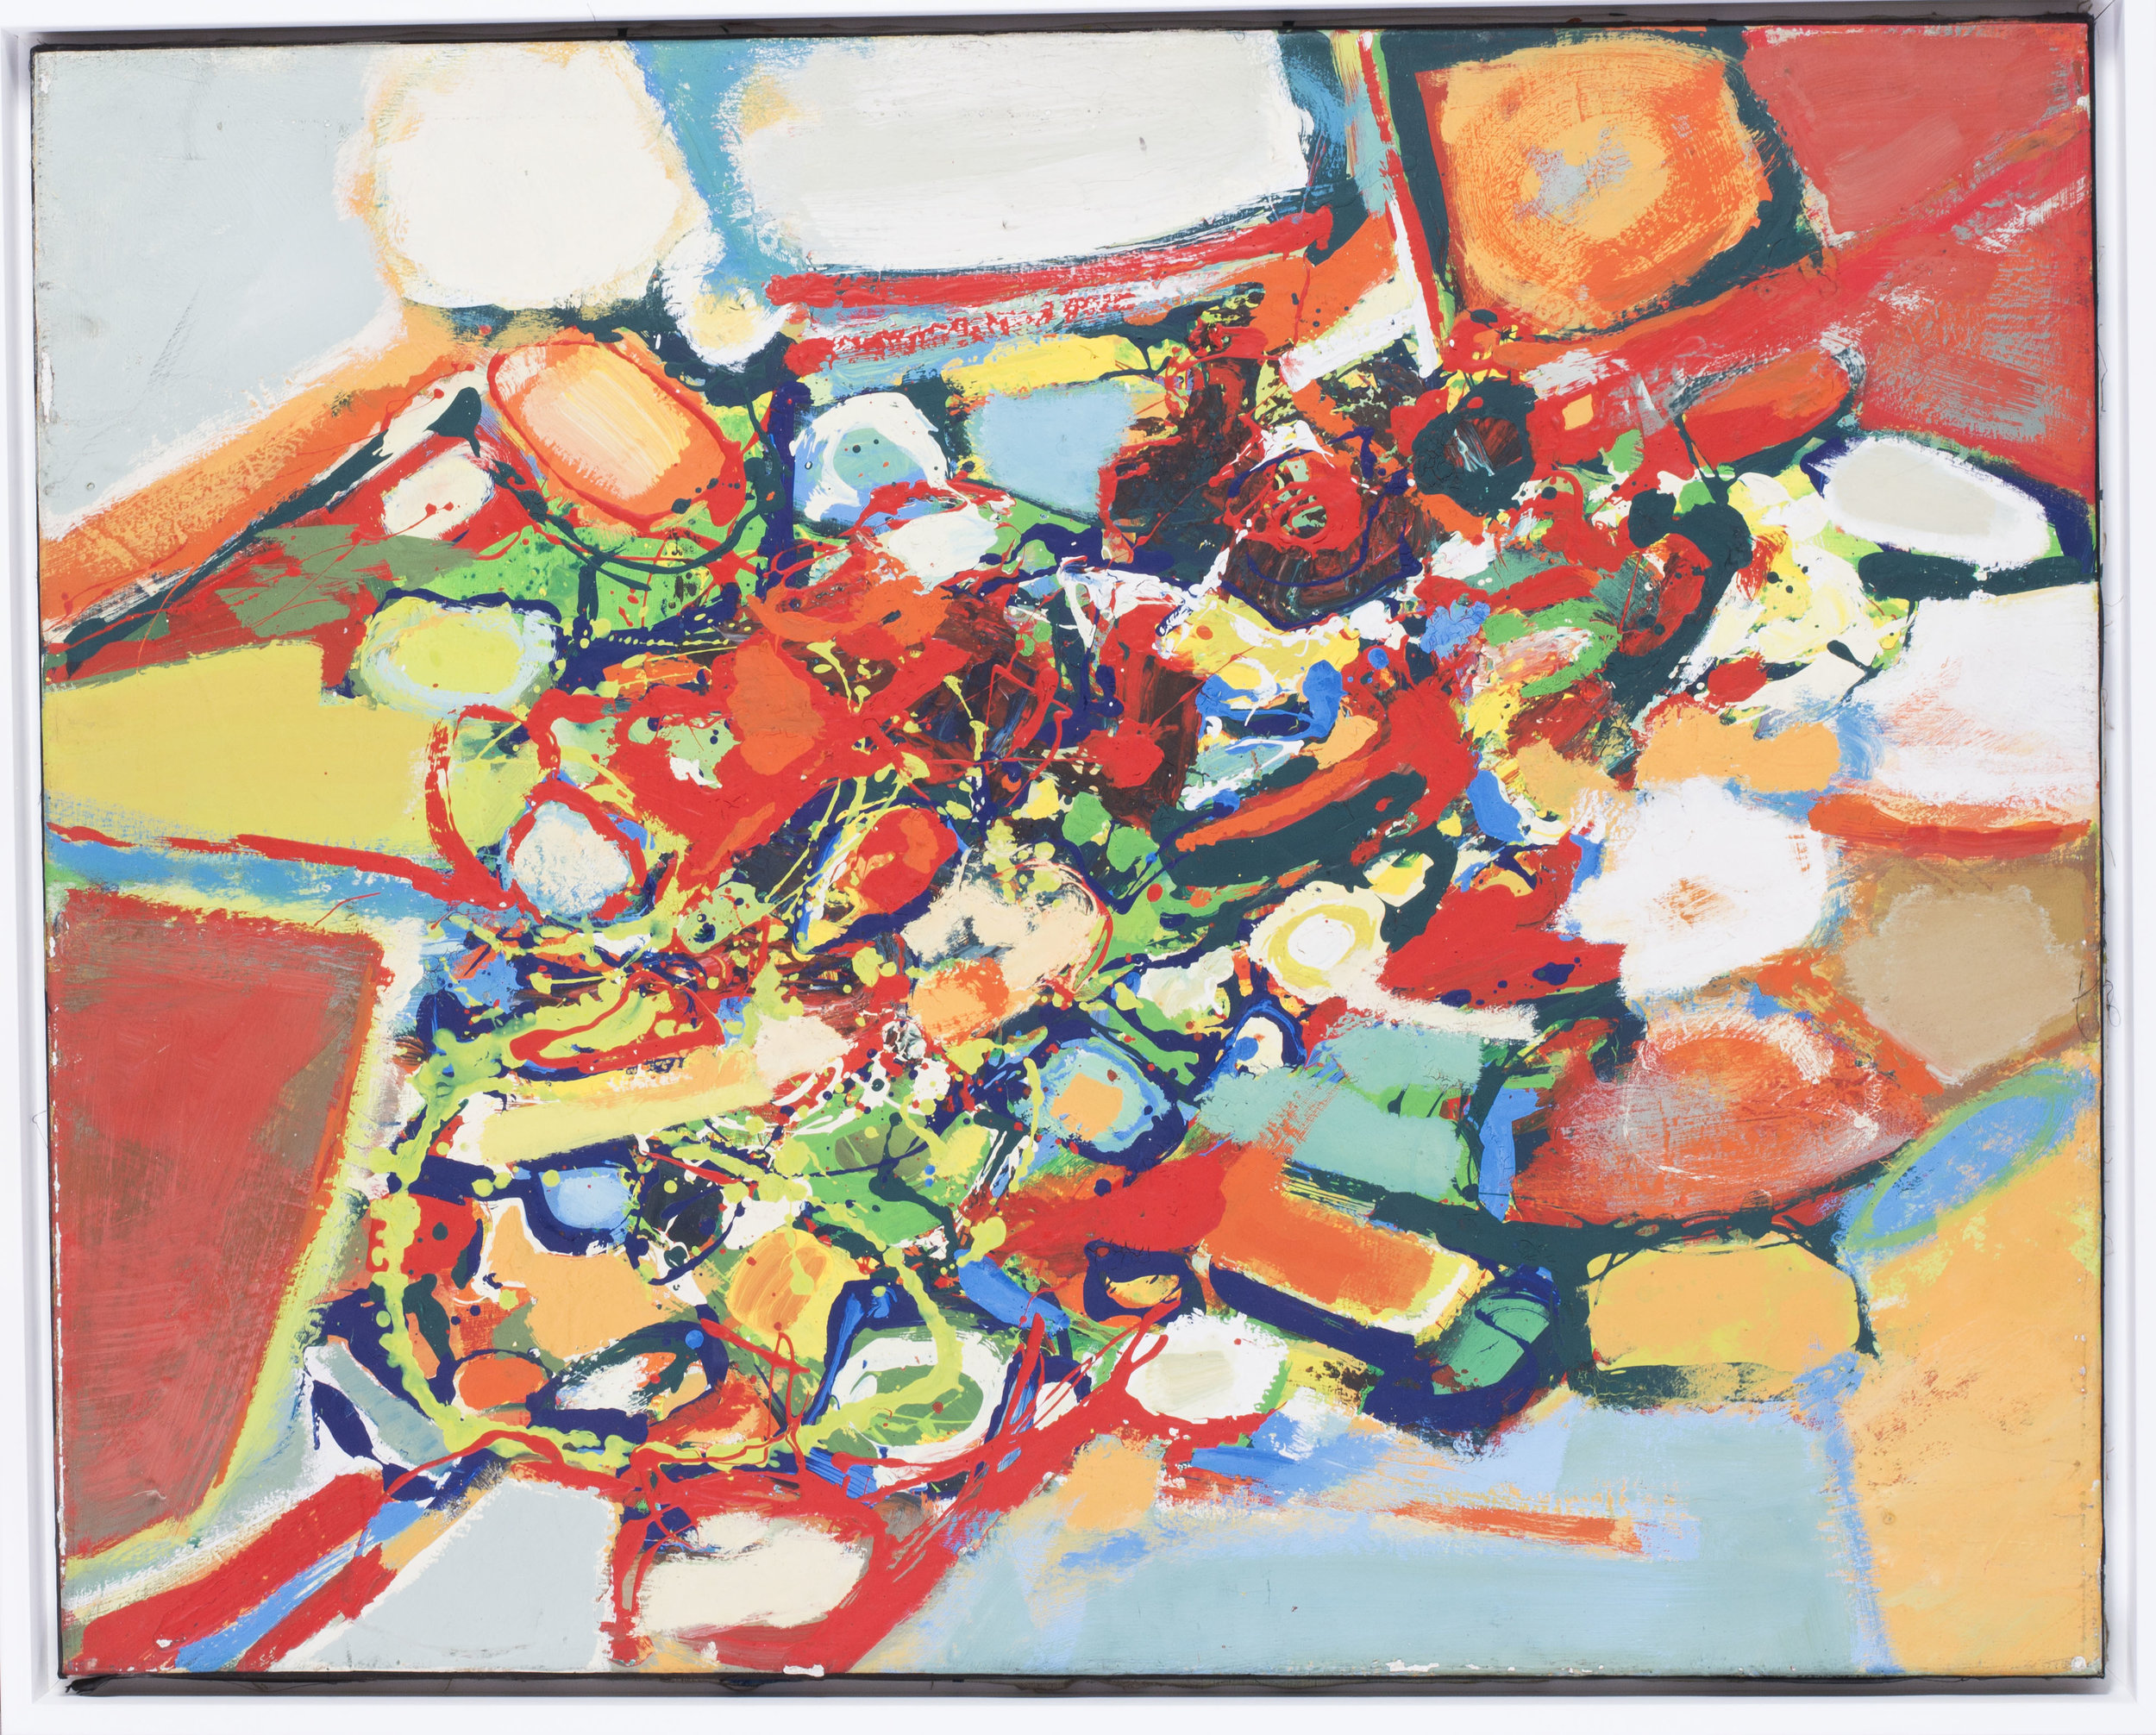 Reds, greens, blues and oranges    Acrylic on canvas  Signed J. Froment (on the reverse)  31.1/2 x 39.3/8 in. (80 x 100 cm.)   Price: £2,400